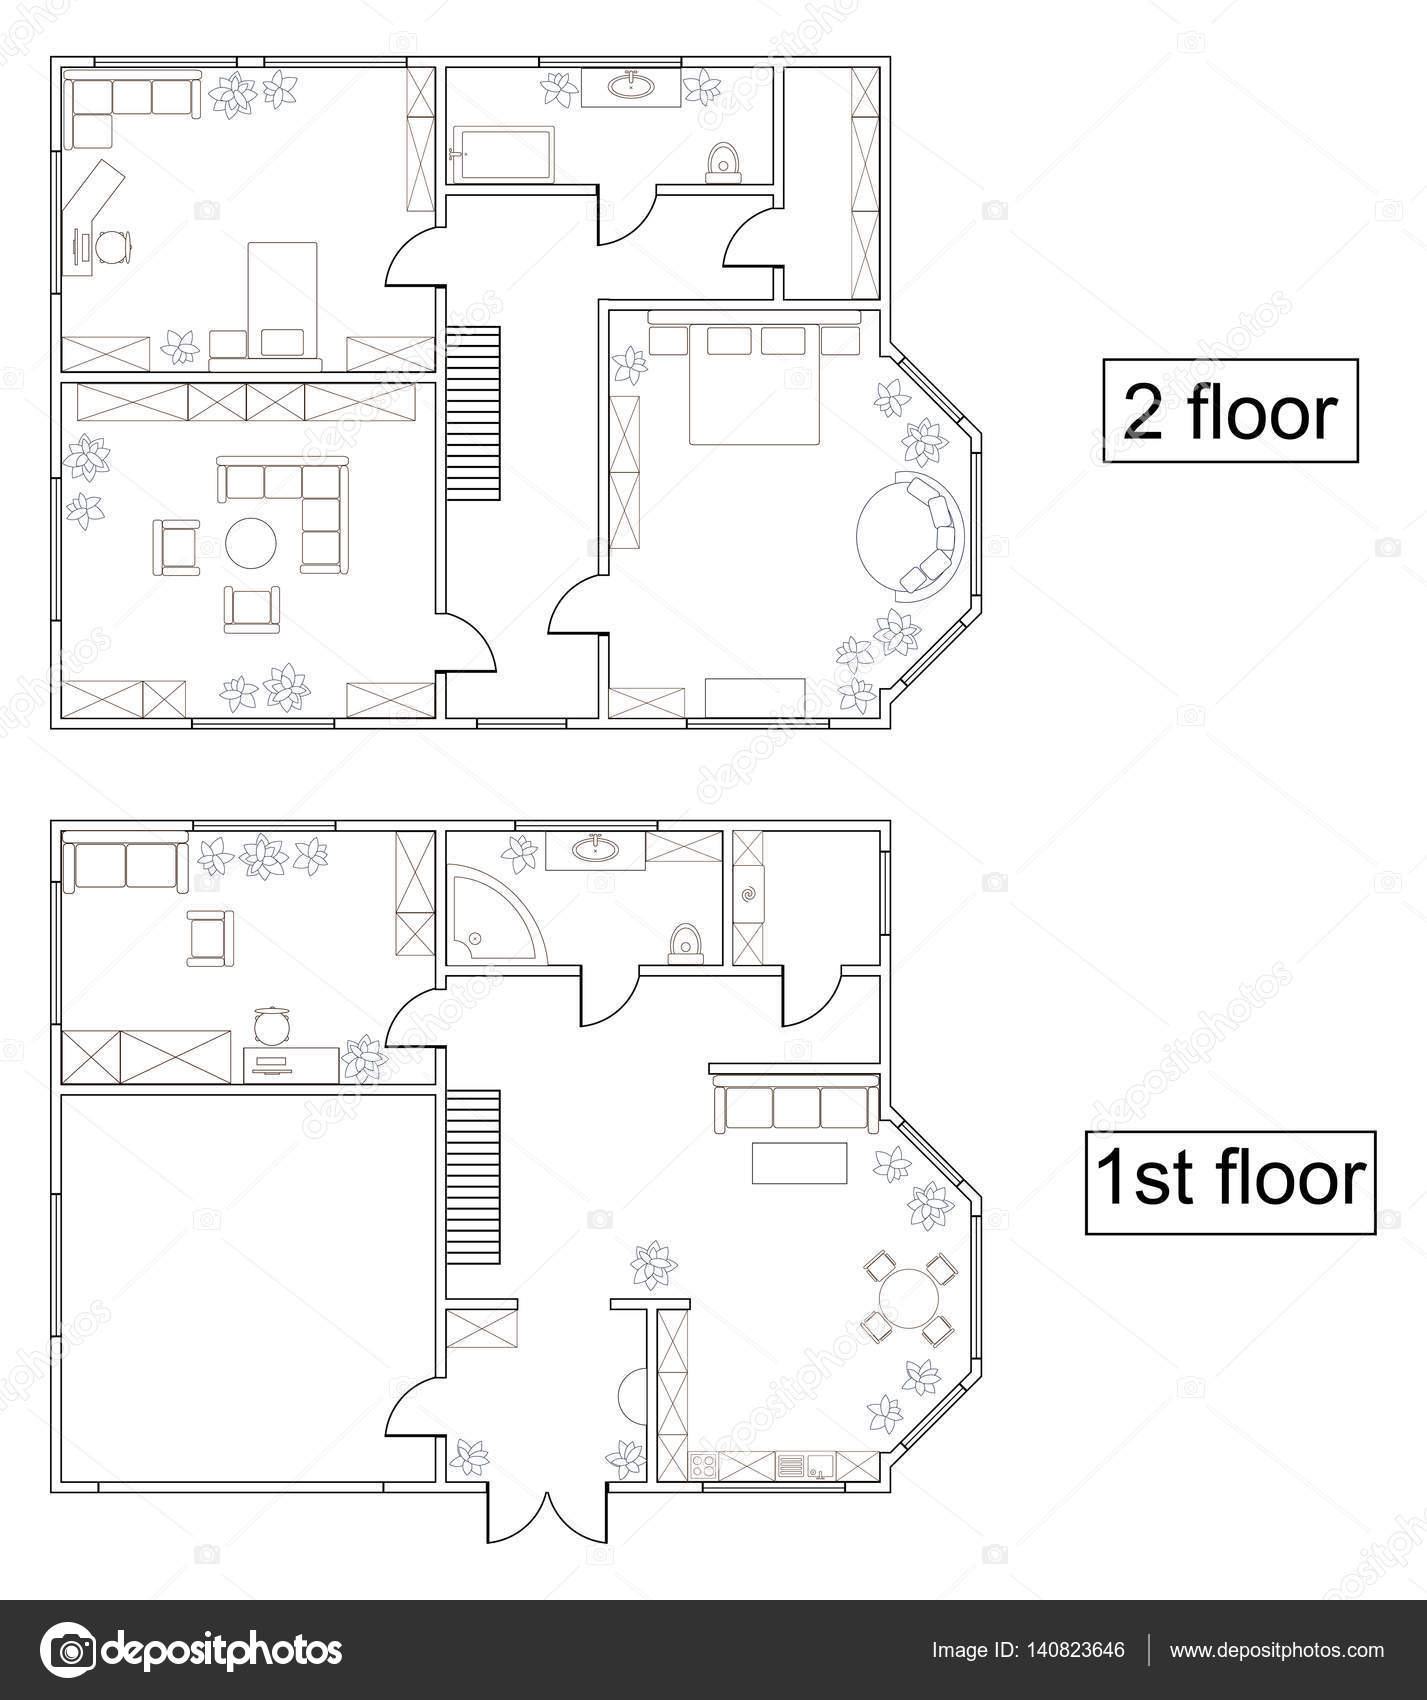 House plans with second floor laundry rooms for Eplans floor plans